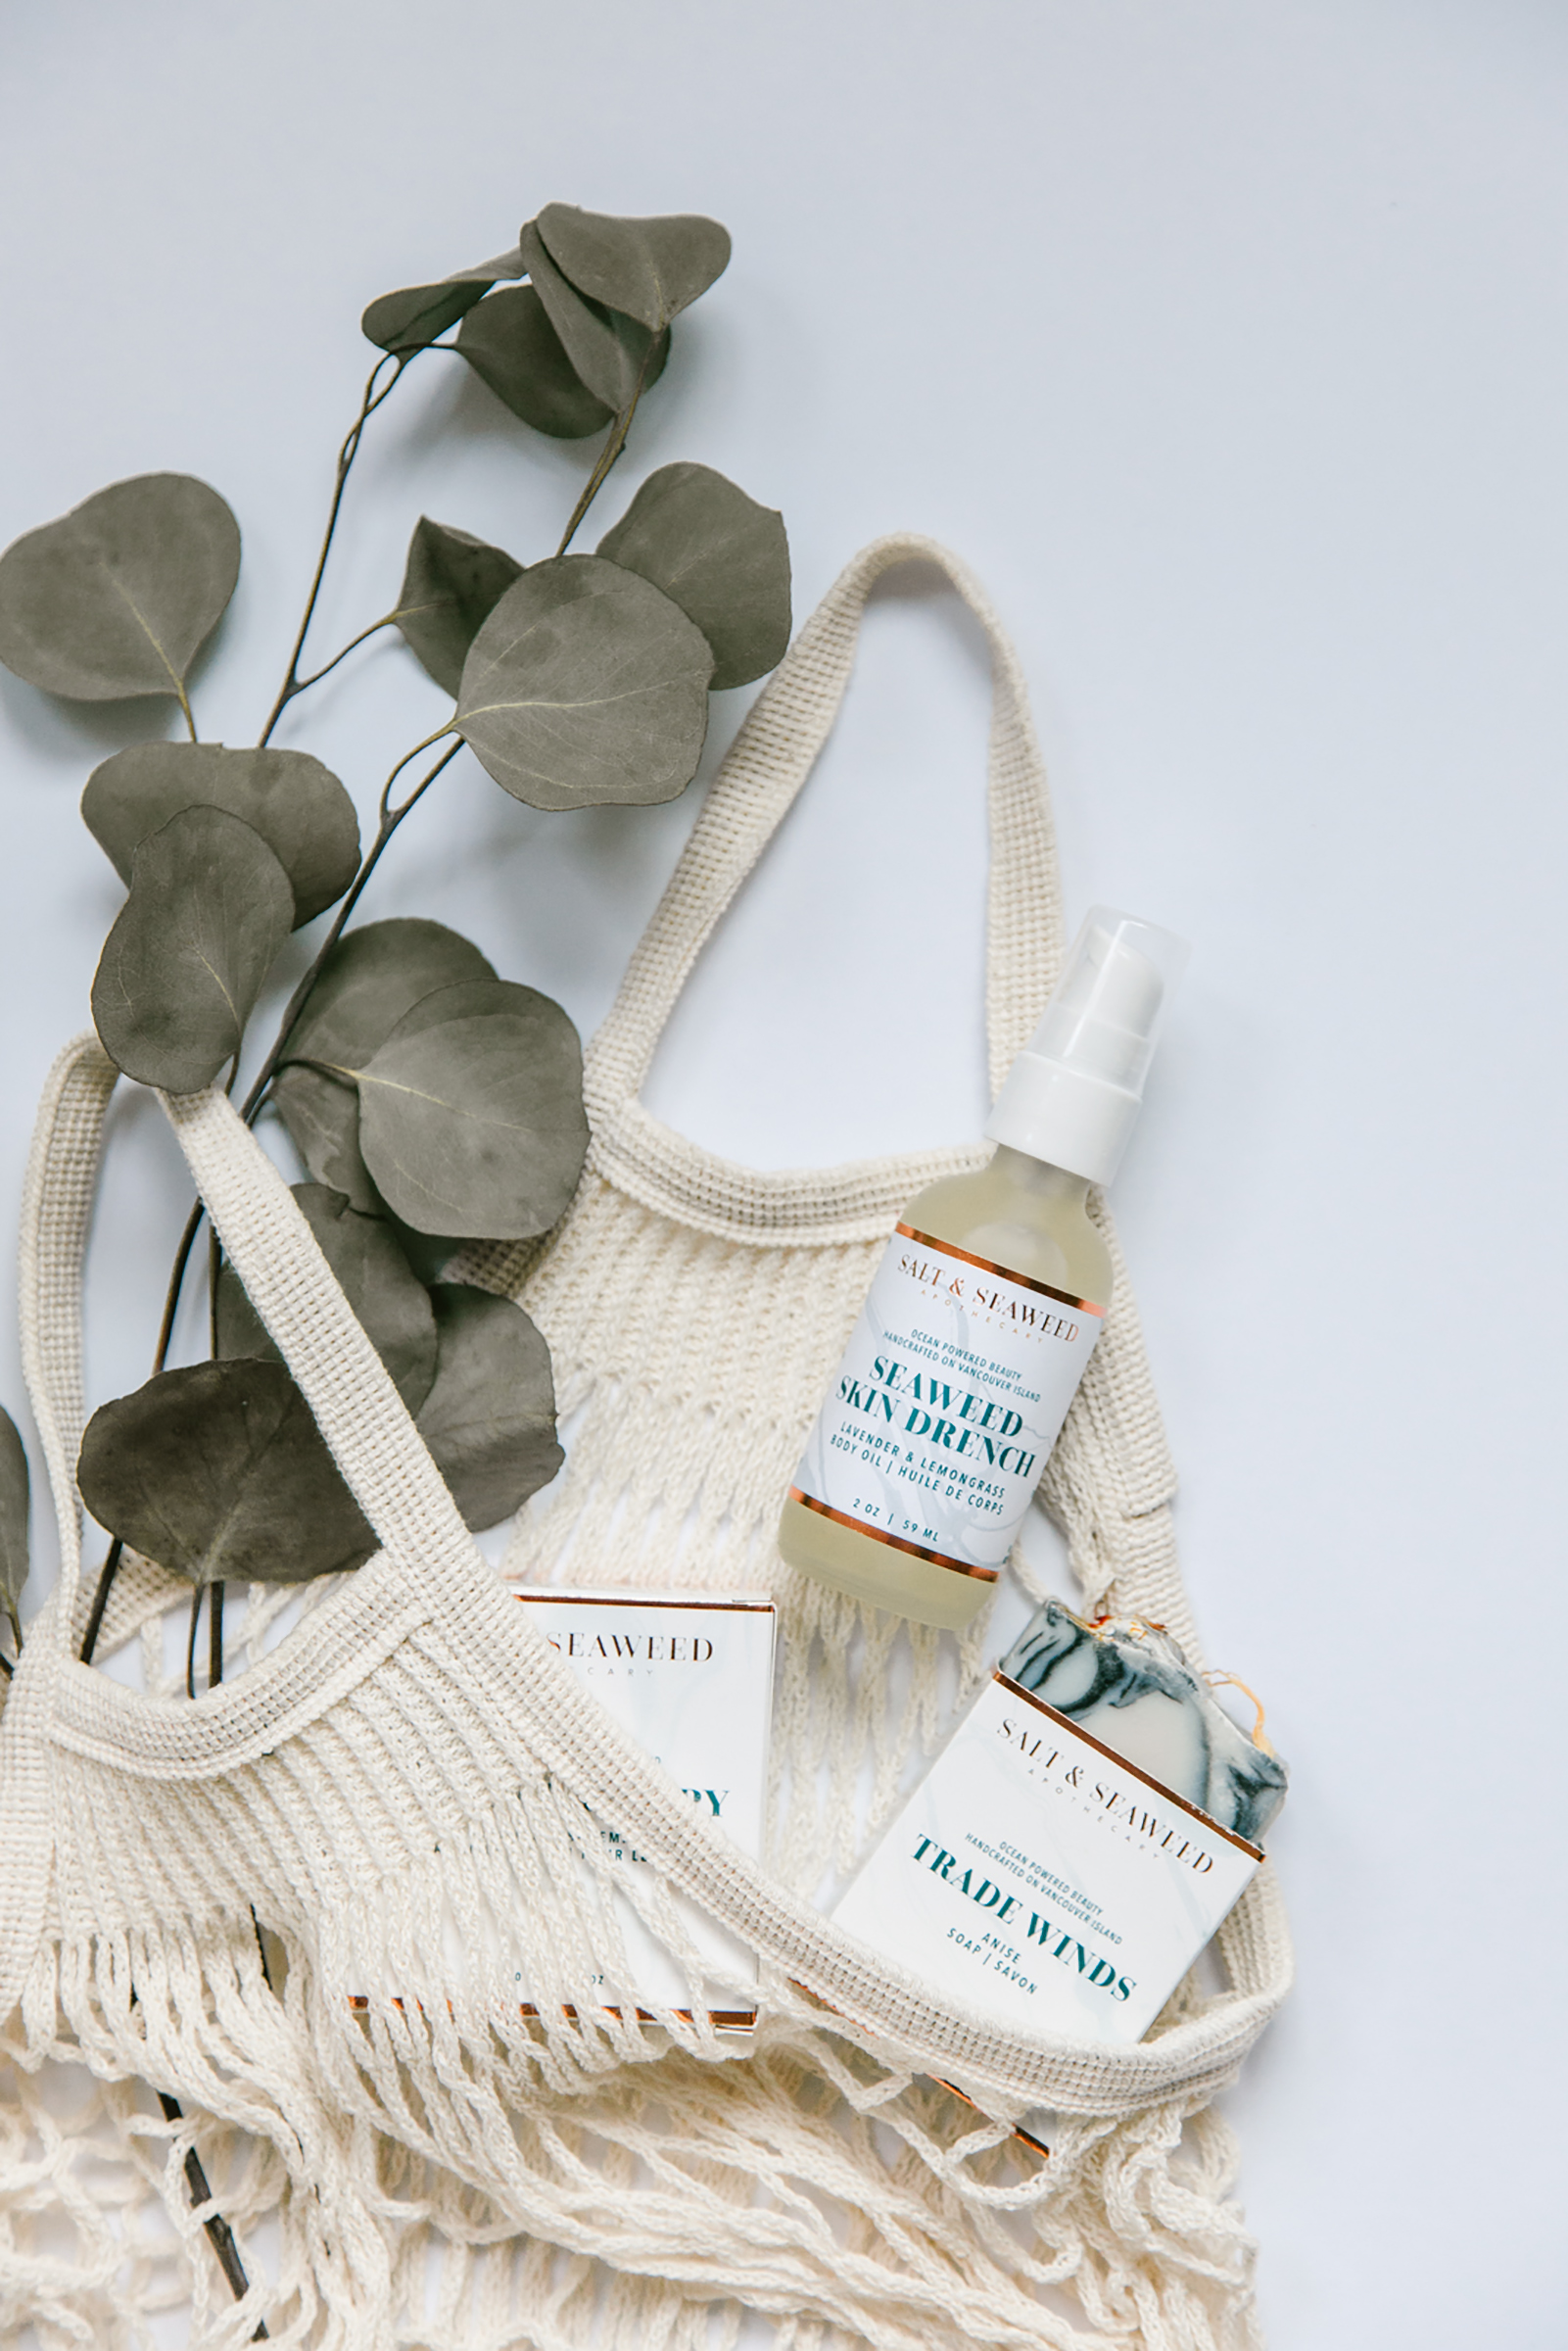 Luxury, Small Batch Bathing Rituals from Salt and Seaweed Apothecary